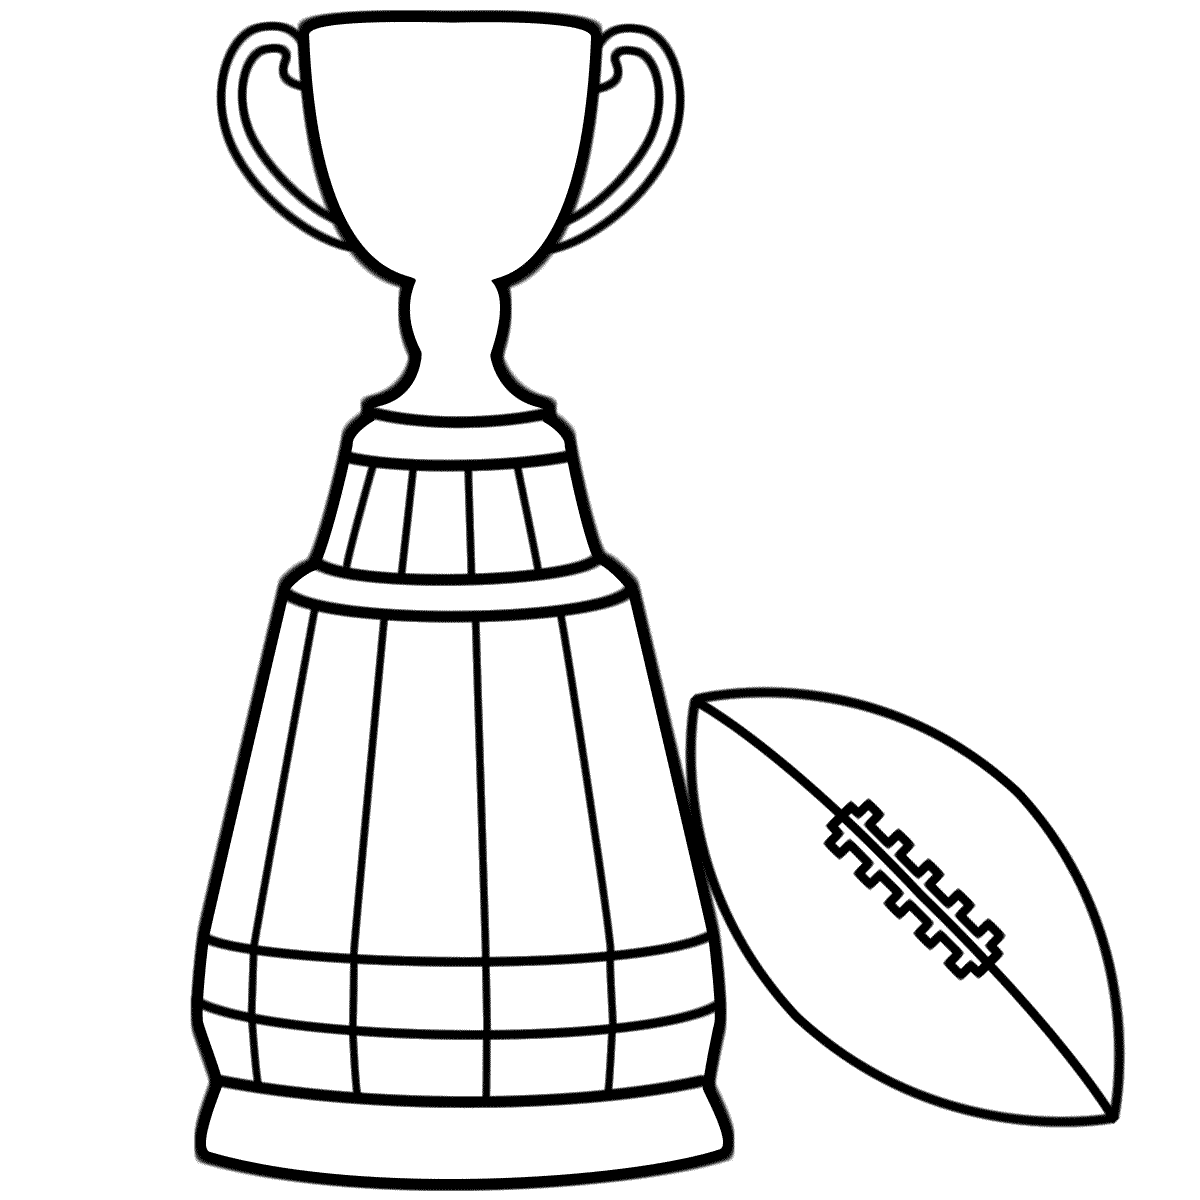 Super Bowl Trophy with Football - Coloring Page (Super Bowl)